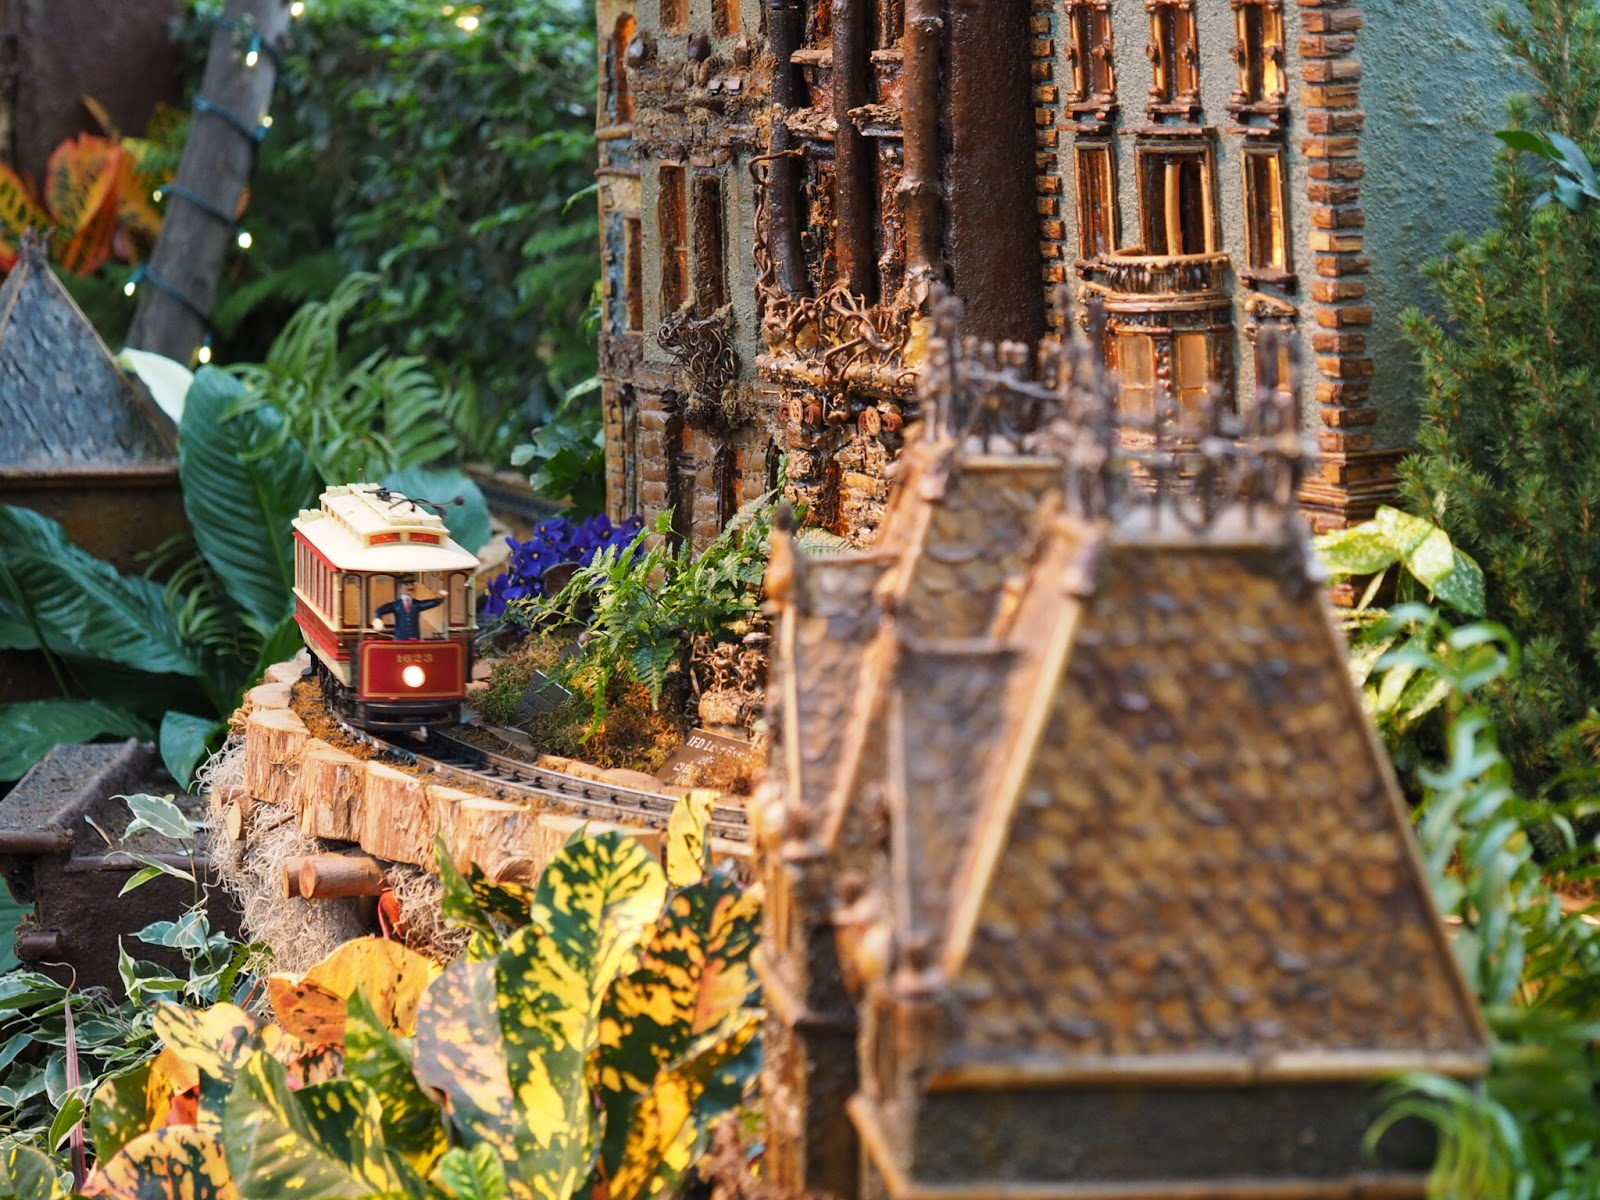 New york botanical garden holiday train show ni hao new york Botanical garden train show